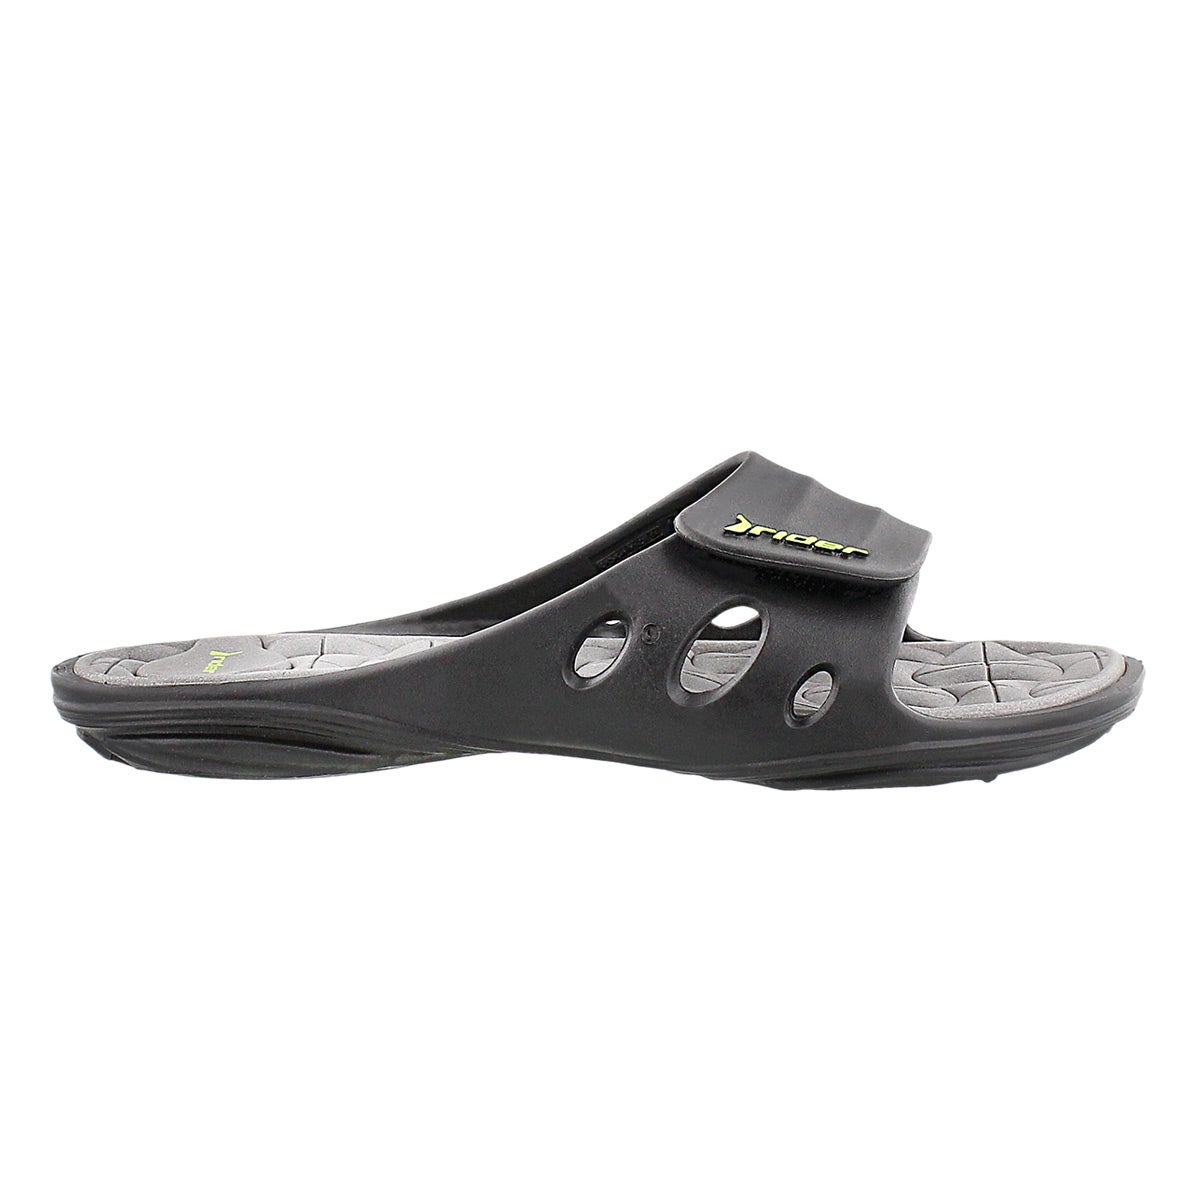 Lds Key VII black slide sport sandal